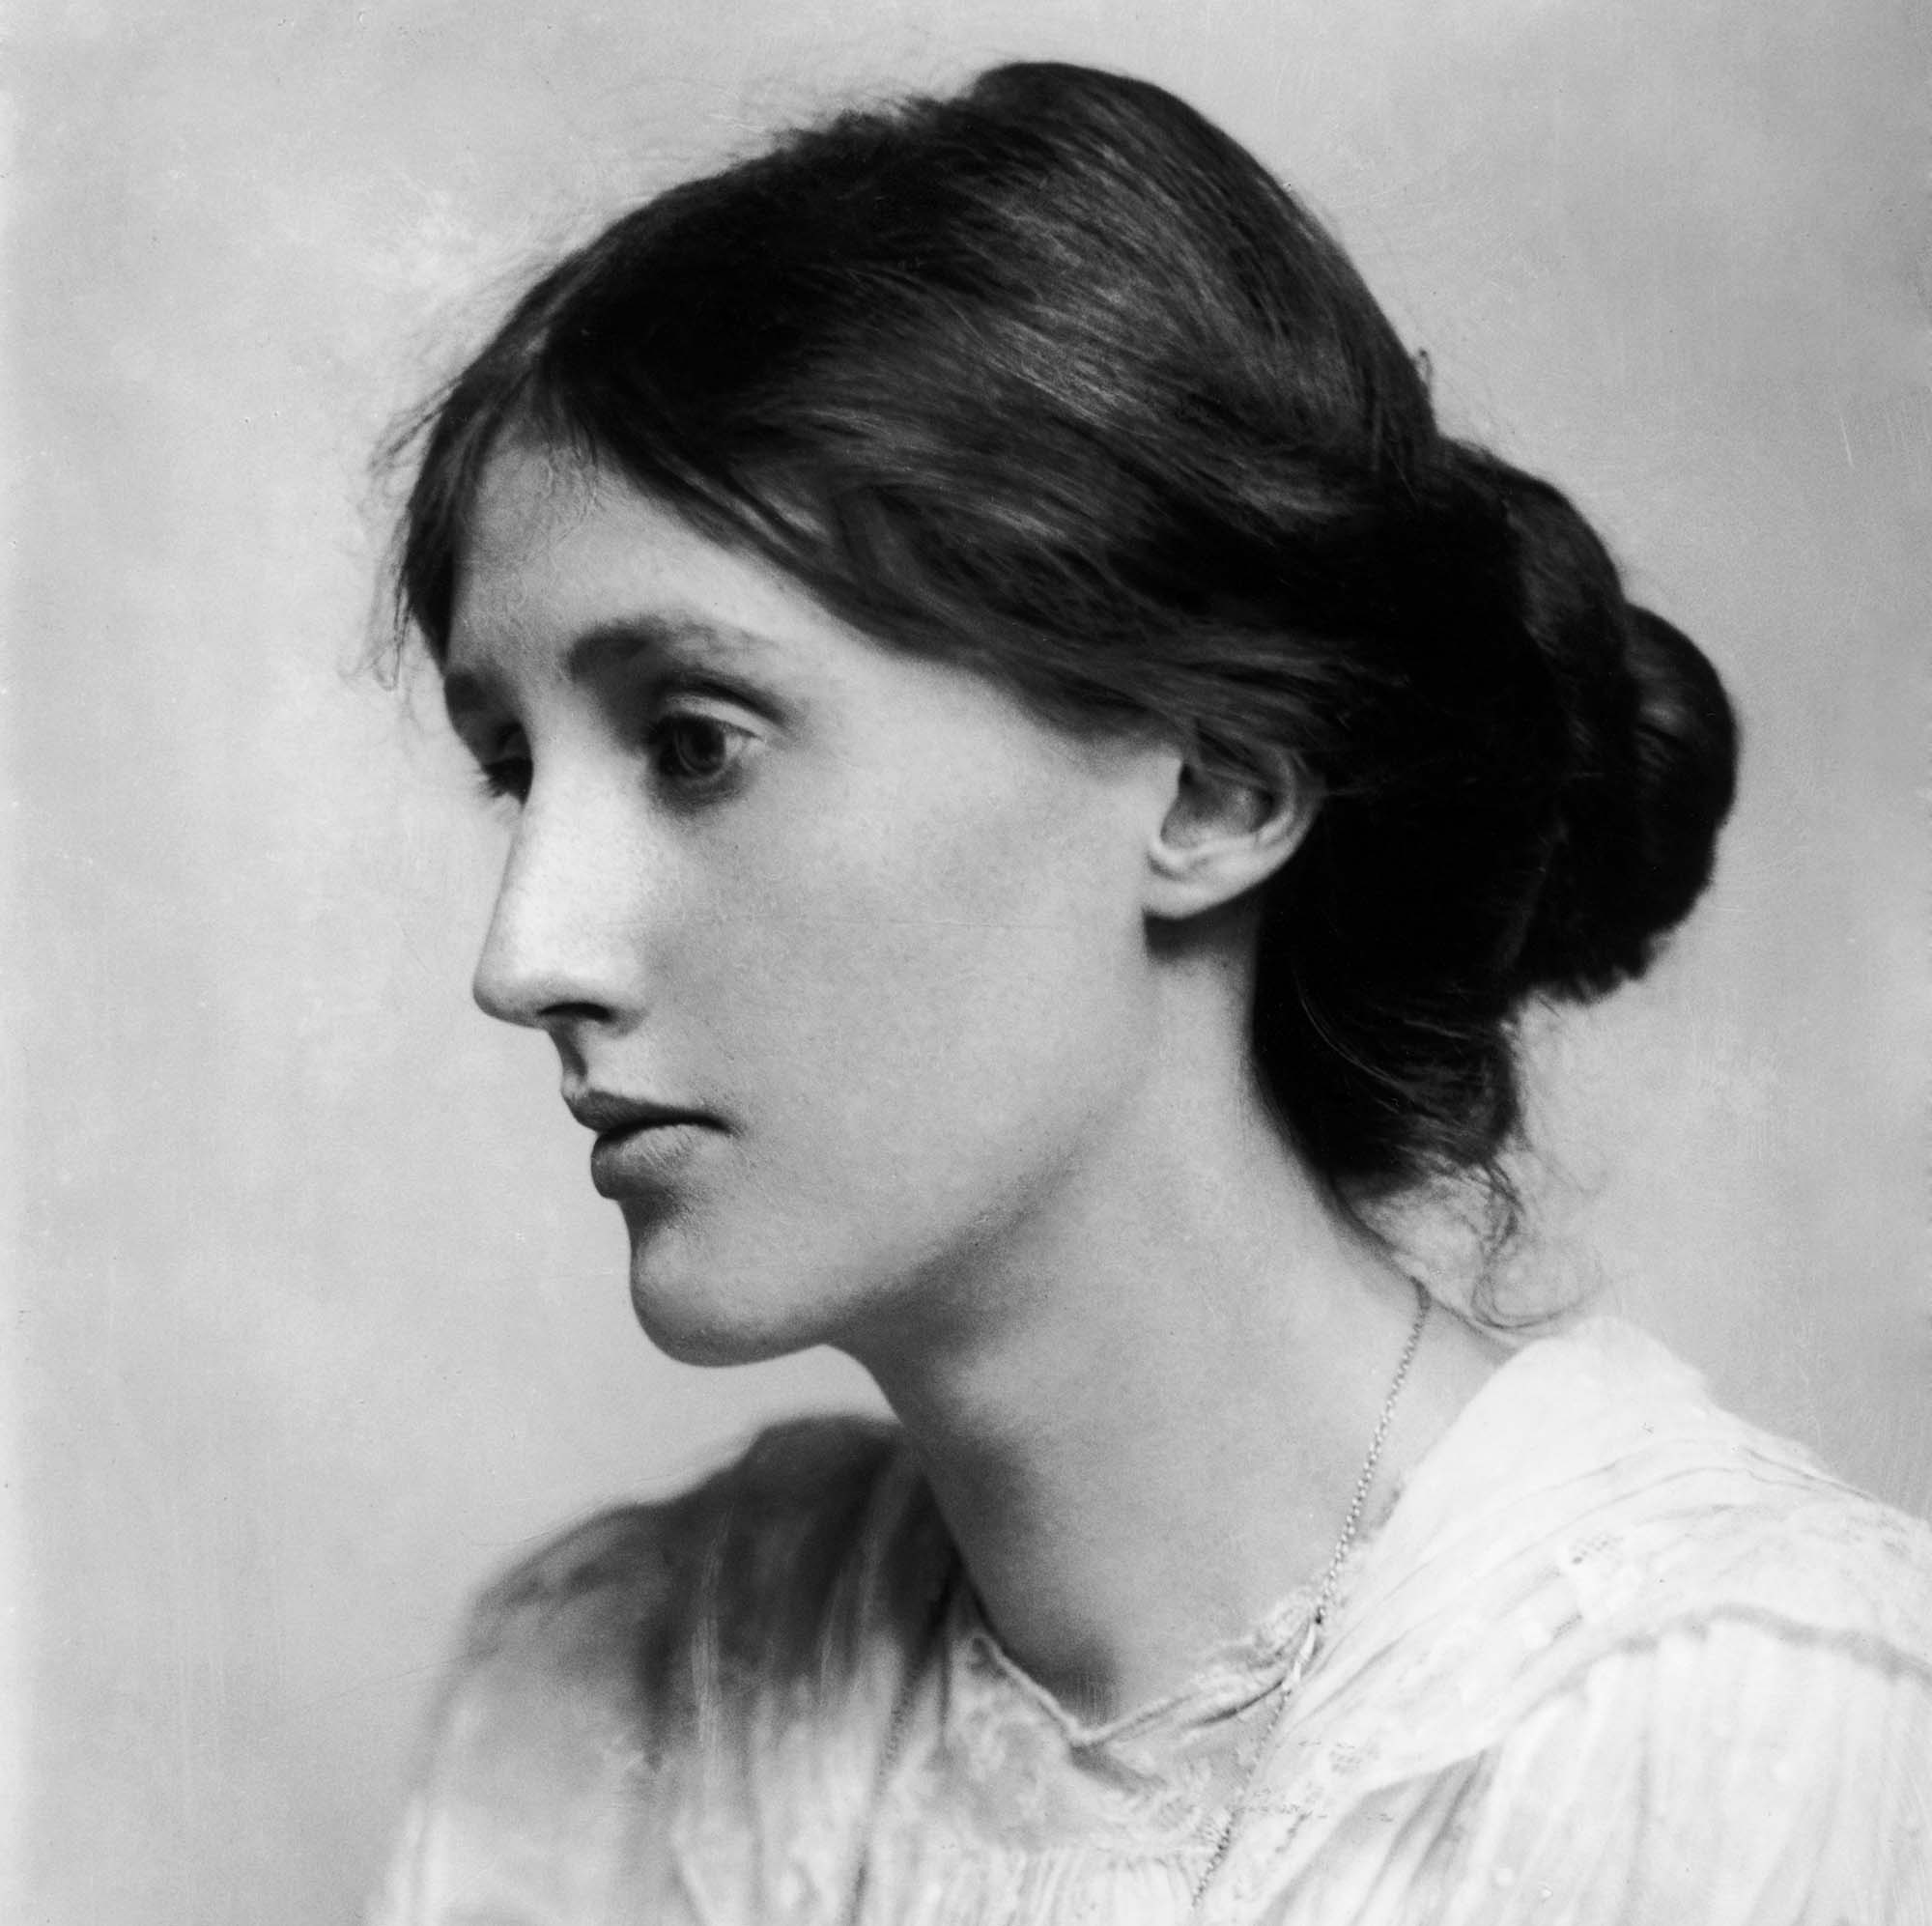 Virginia Woolf 1902 | Photo by George C. Beresford/Hulton Archive/Getty Images(public domain)